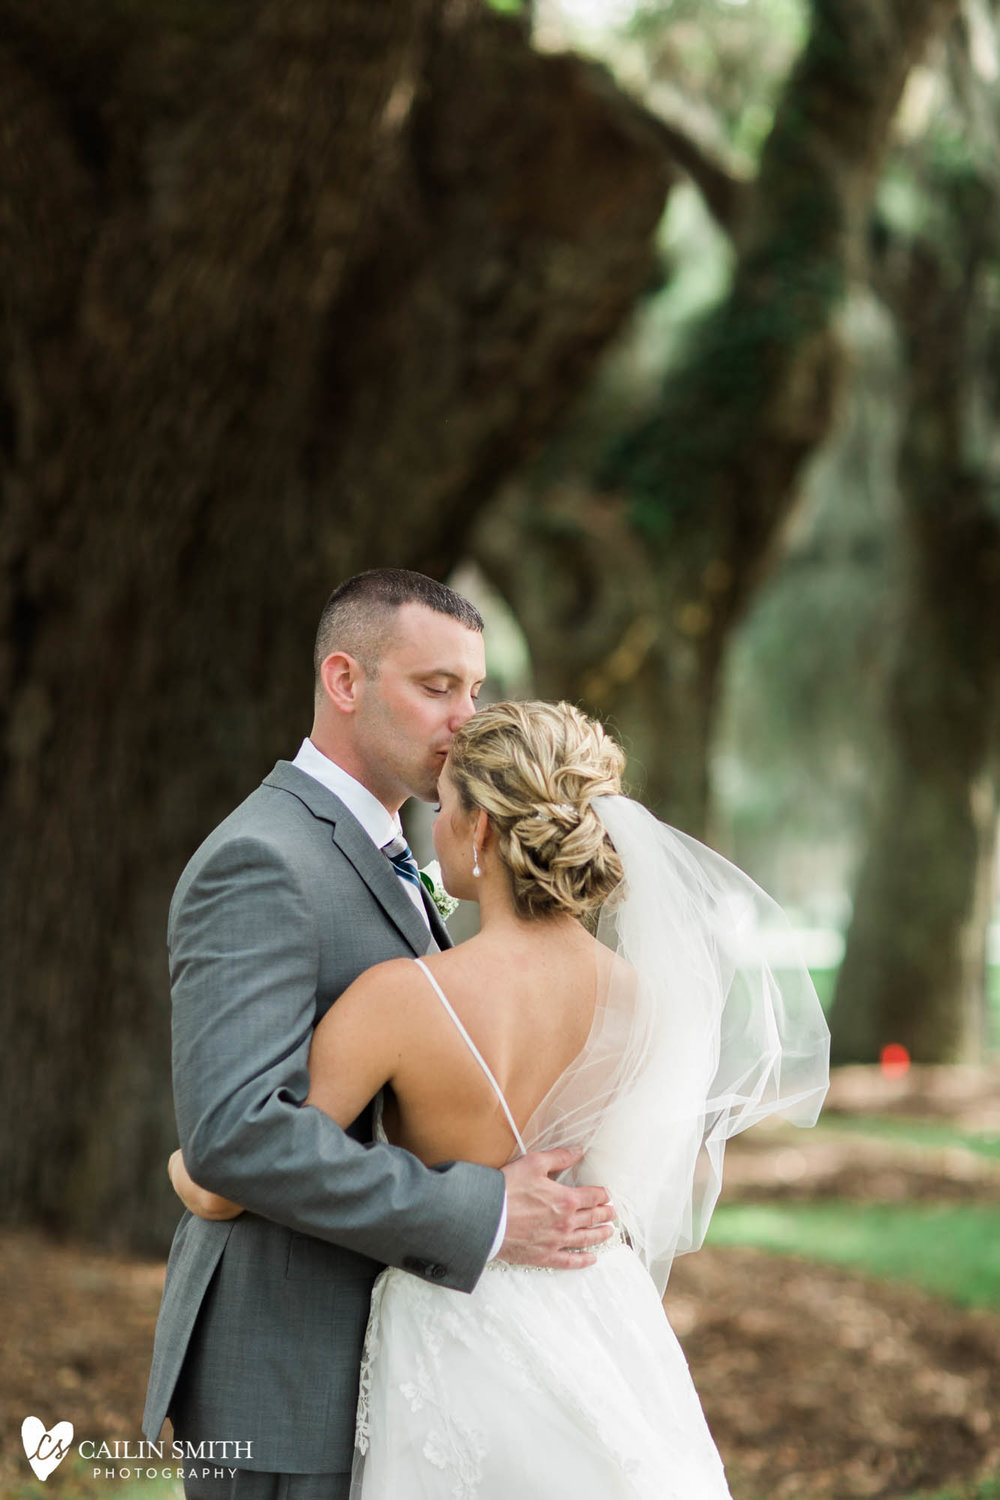 Sarah_Justin_St_Simons_Island_Lighthouse_Wedding_Photography_037.jpg